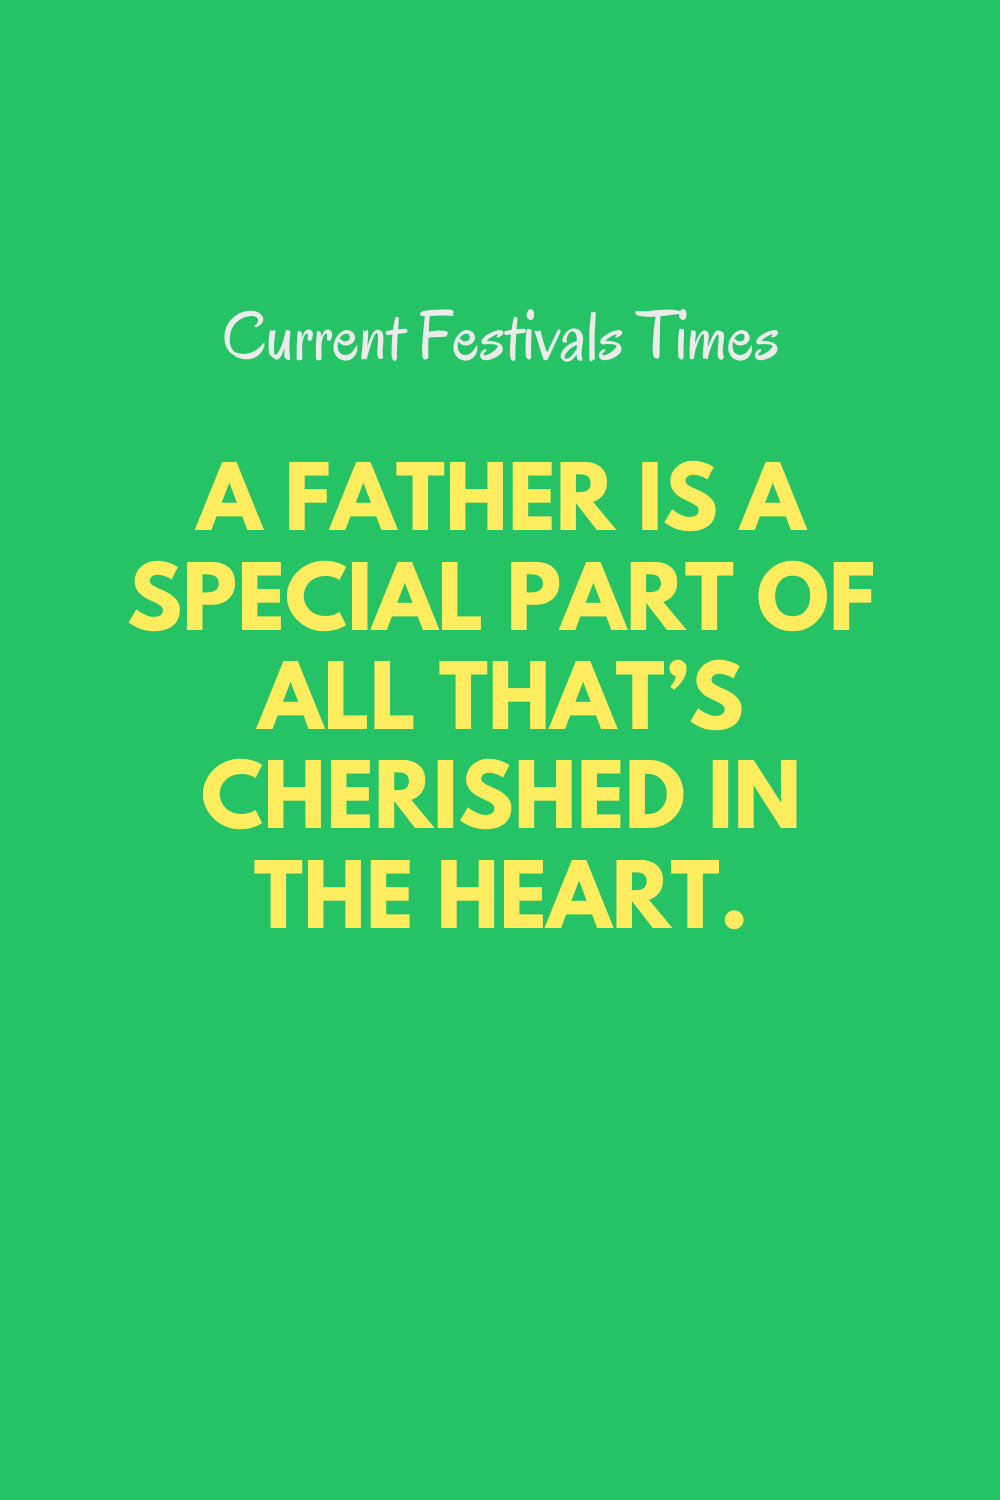 fathers-day-message-for-facebook